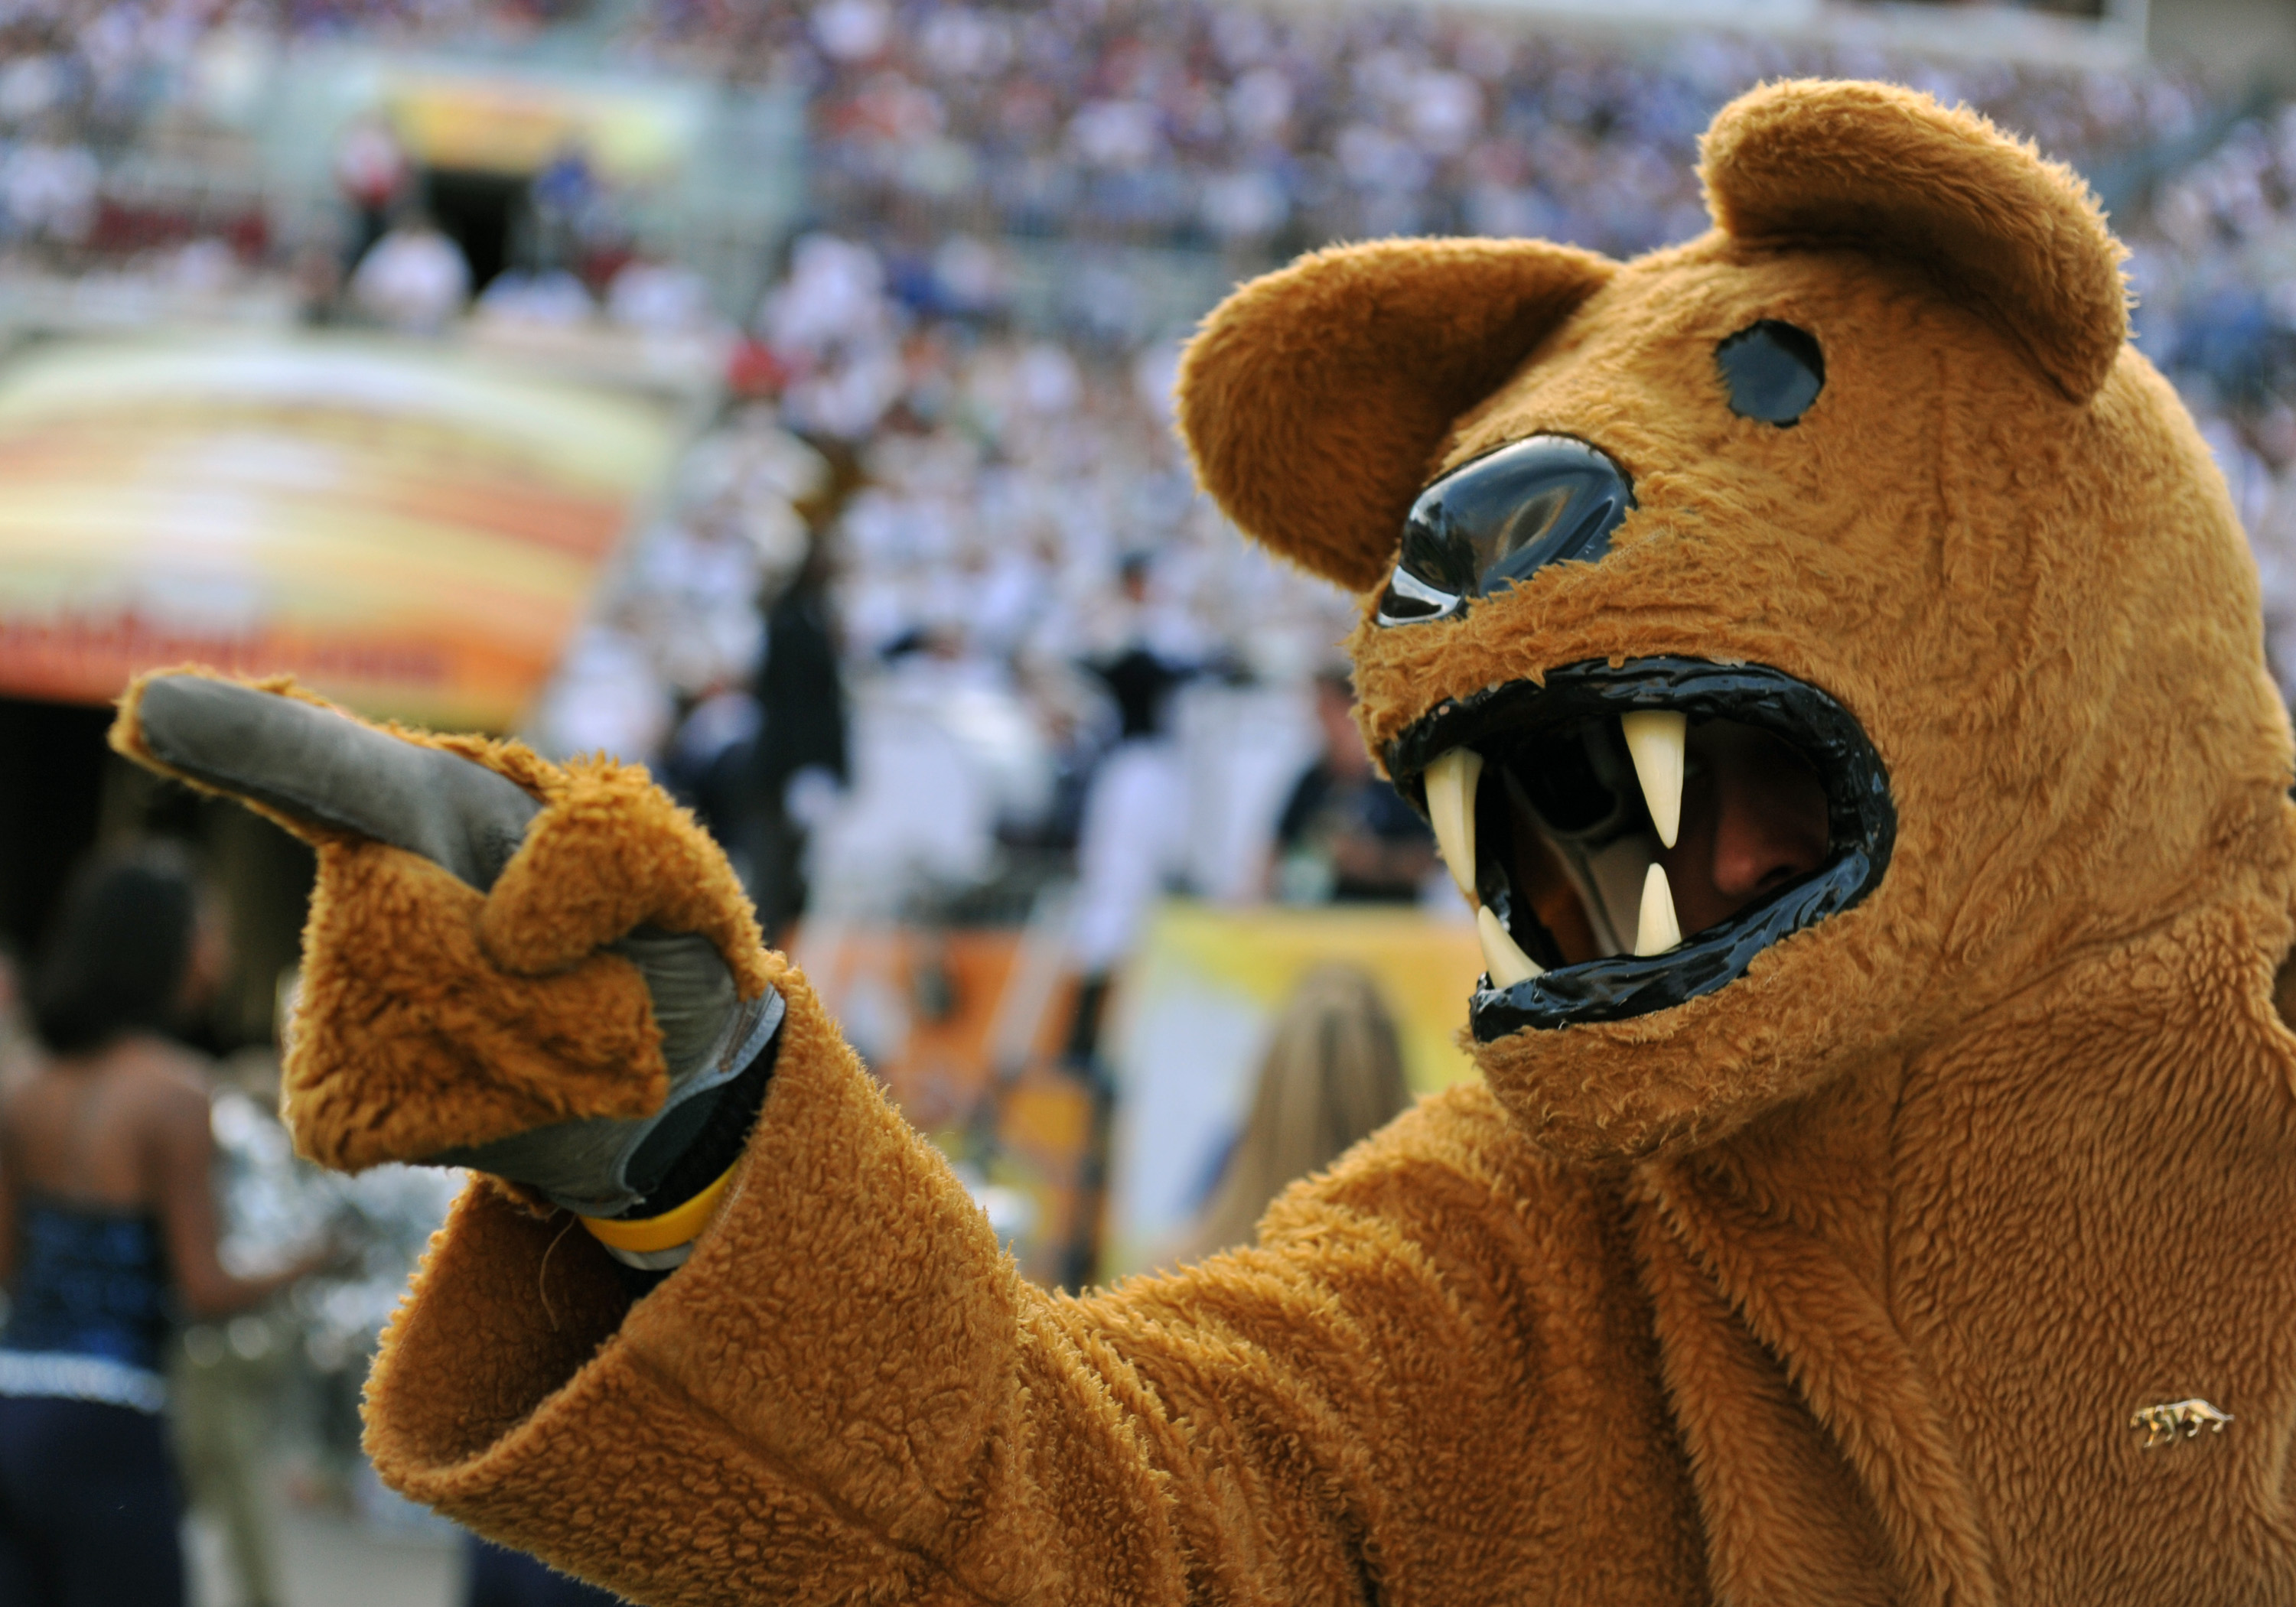 TAMPA, FL - JANUARY 1:  The mascot of the Penn State Nittany Lions points to the field during play against the Florida Gators January 1, 2010 in the 25th Outback Bowl at Raymond James Stadium in Tampa, Florida.  (Photo by Al Messerschmidt/Getty Images)